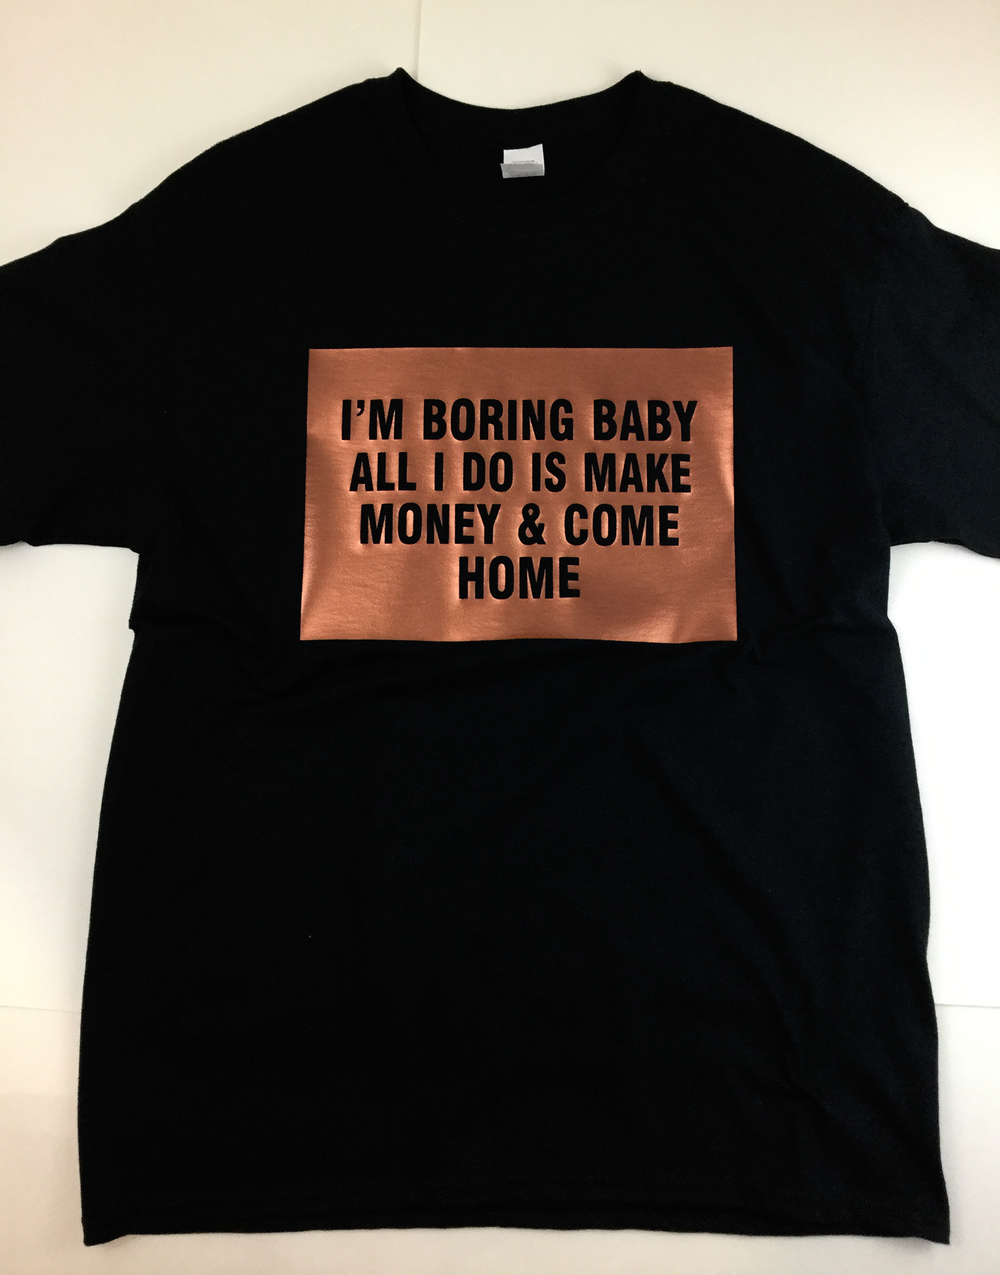 I'm boring baby..All I do is make money & come home (Unisex) T-shirt